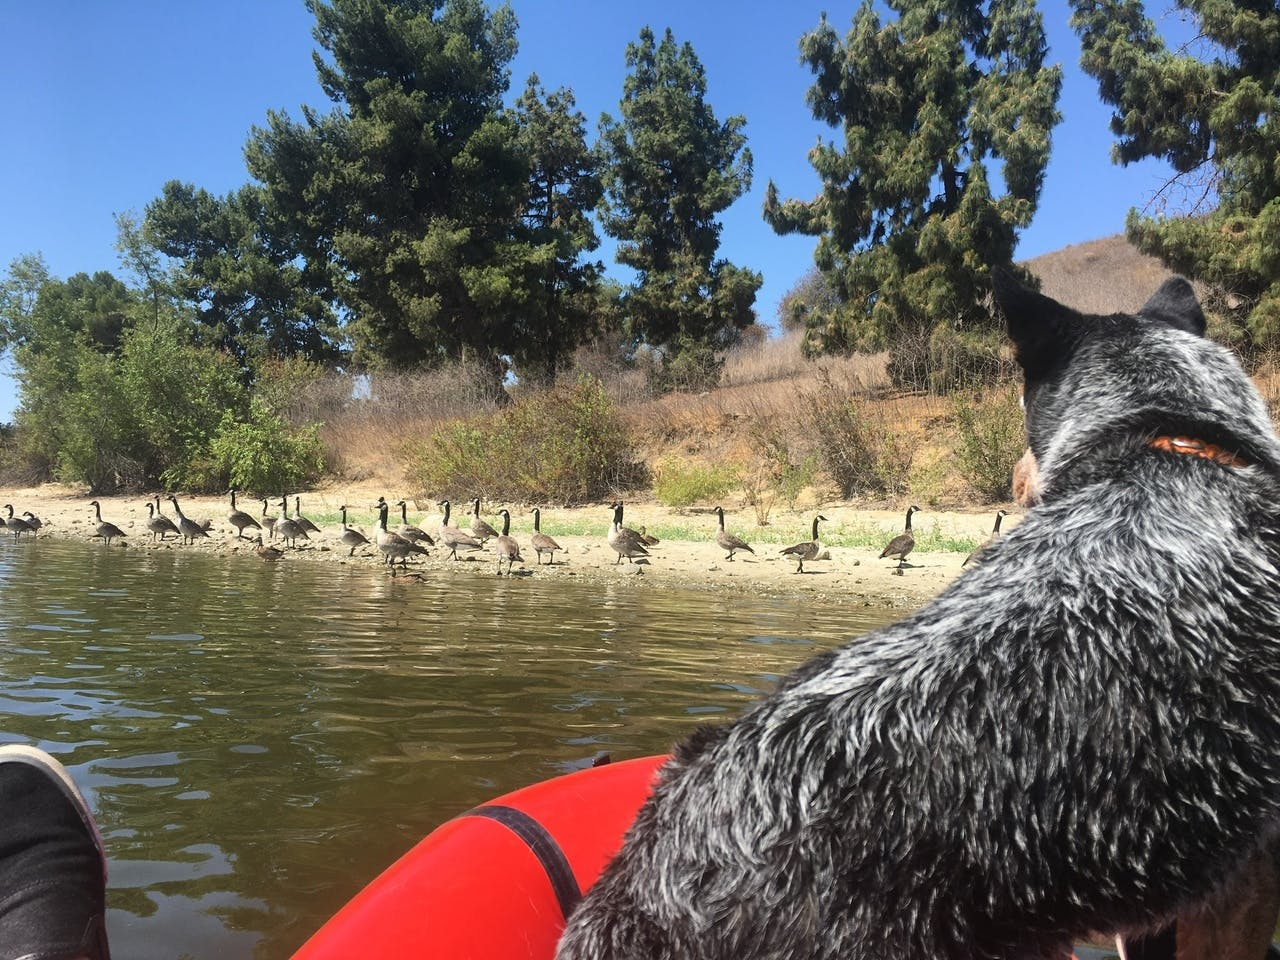 """Kelly Hearn: """"Sodog and the geese: Sodog checking the geese out."""""""